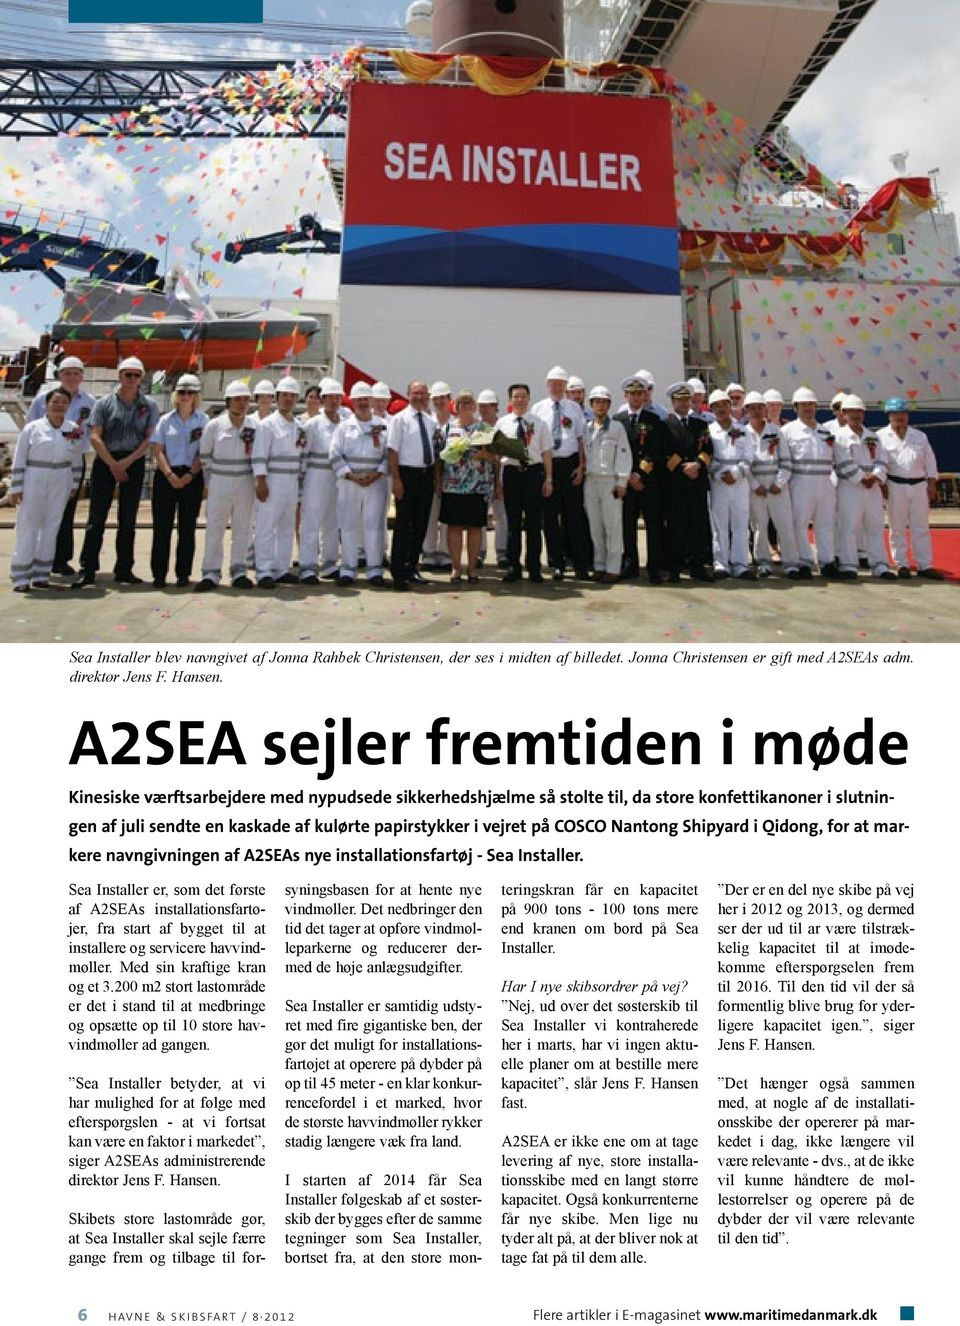 på COSCO Nantong Shipyard i Qidong, for at markere navngivningen af A2SEAs nye installationsfartøj - Sea Installer.